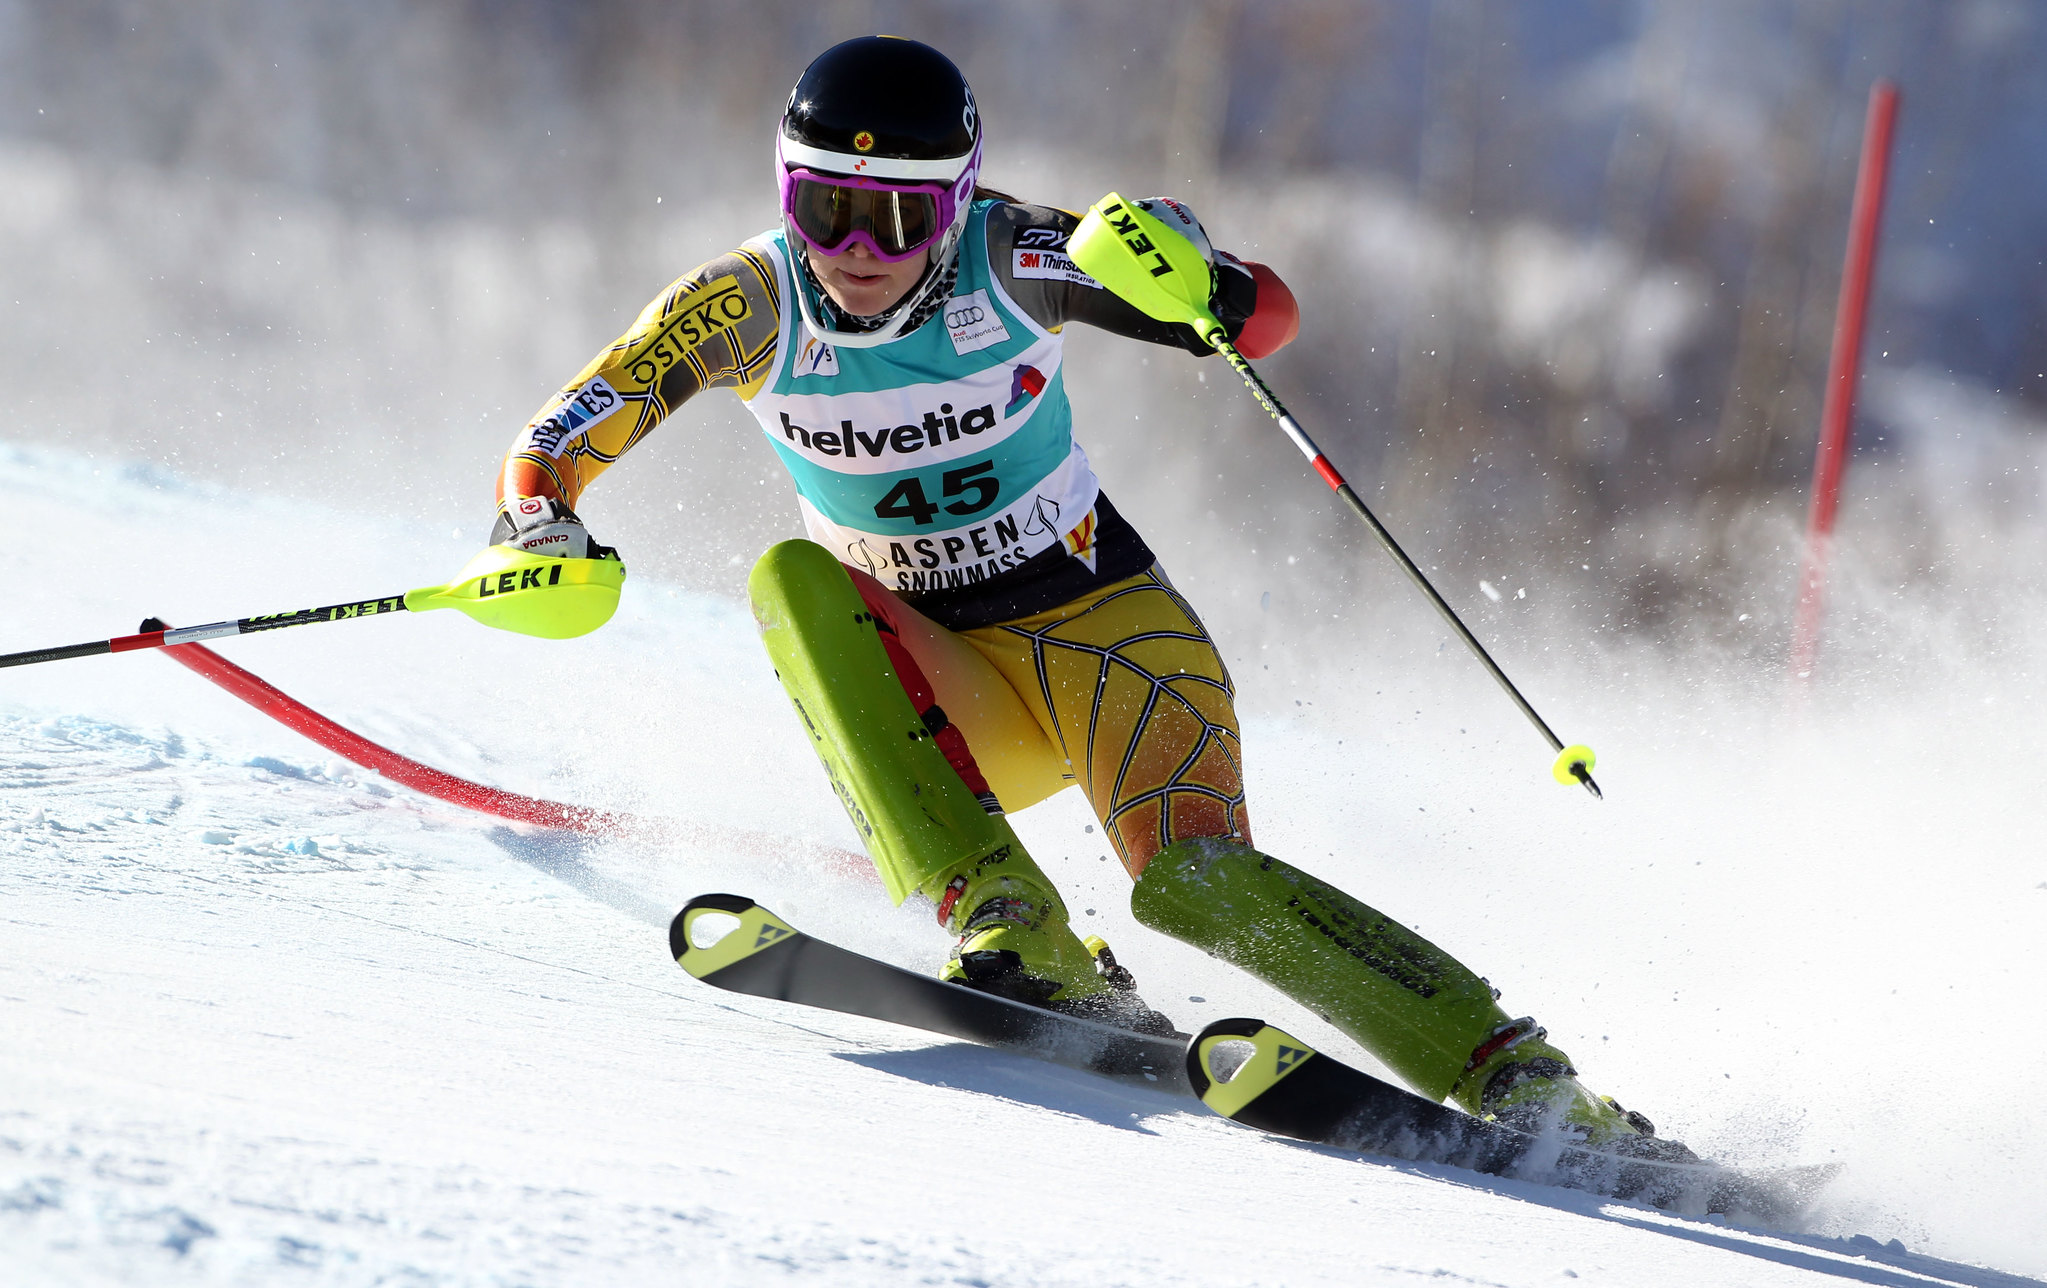 Elli Terwiel at the World Cup slalom in Aspen.